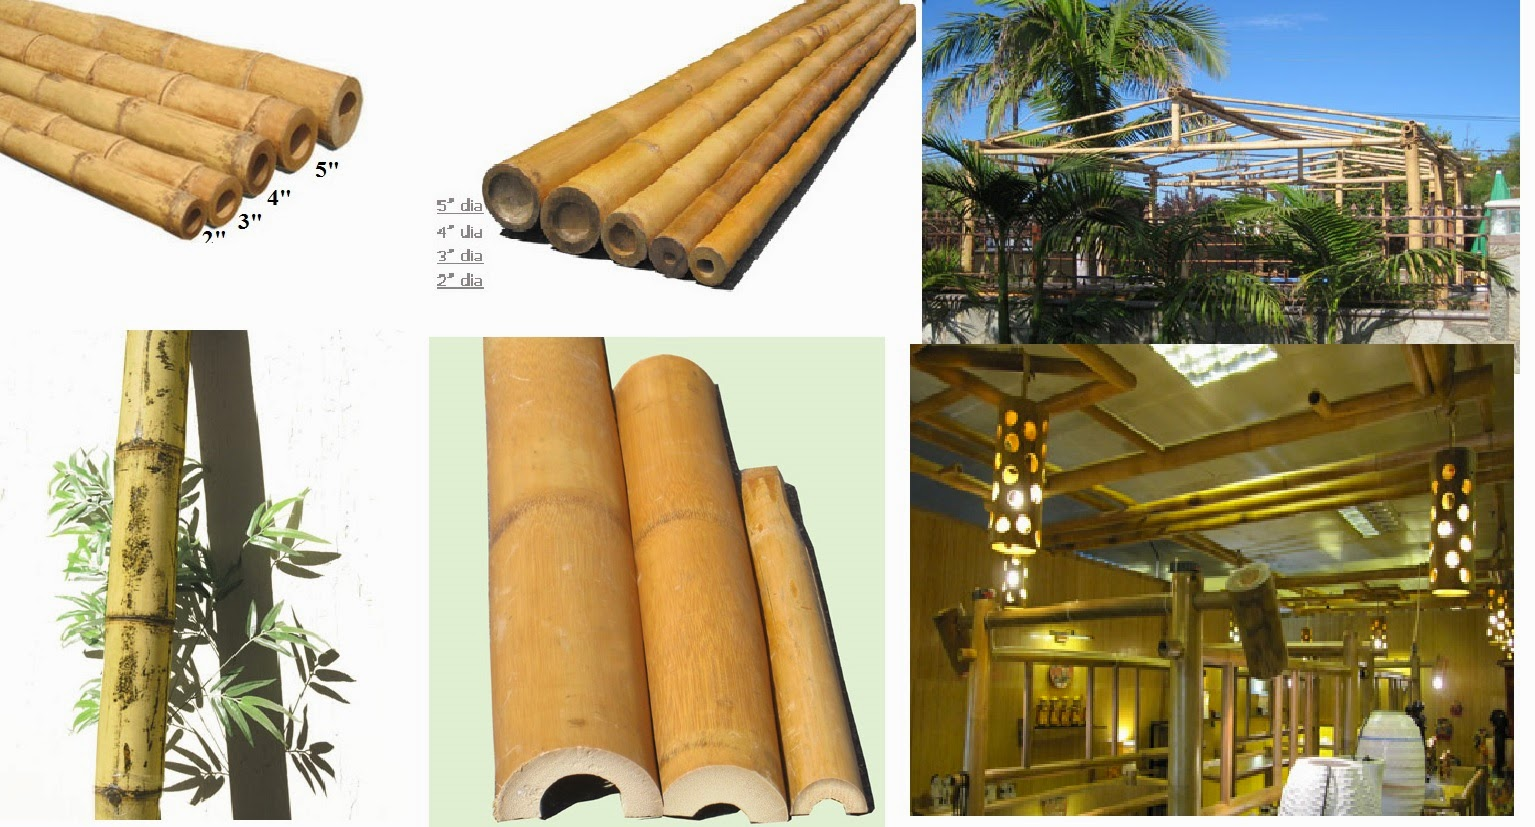 best bamboo cane/ pole /stake all decor ideas for fences,custom